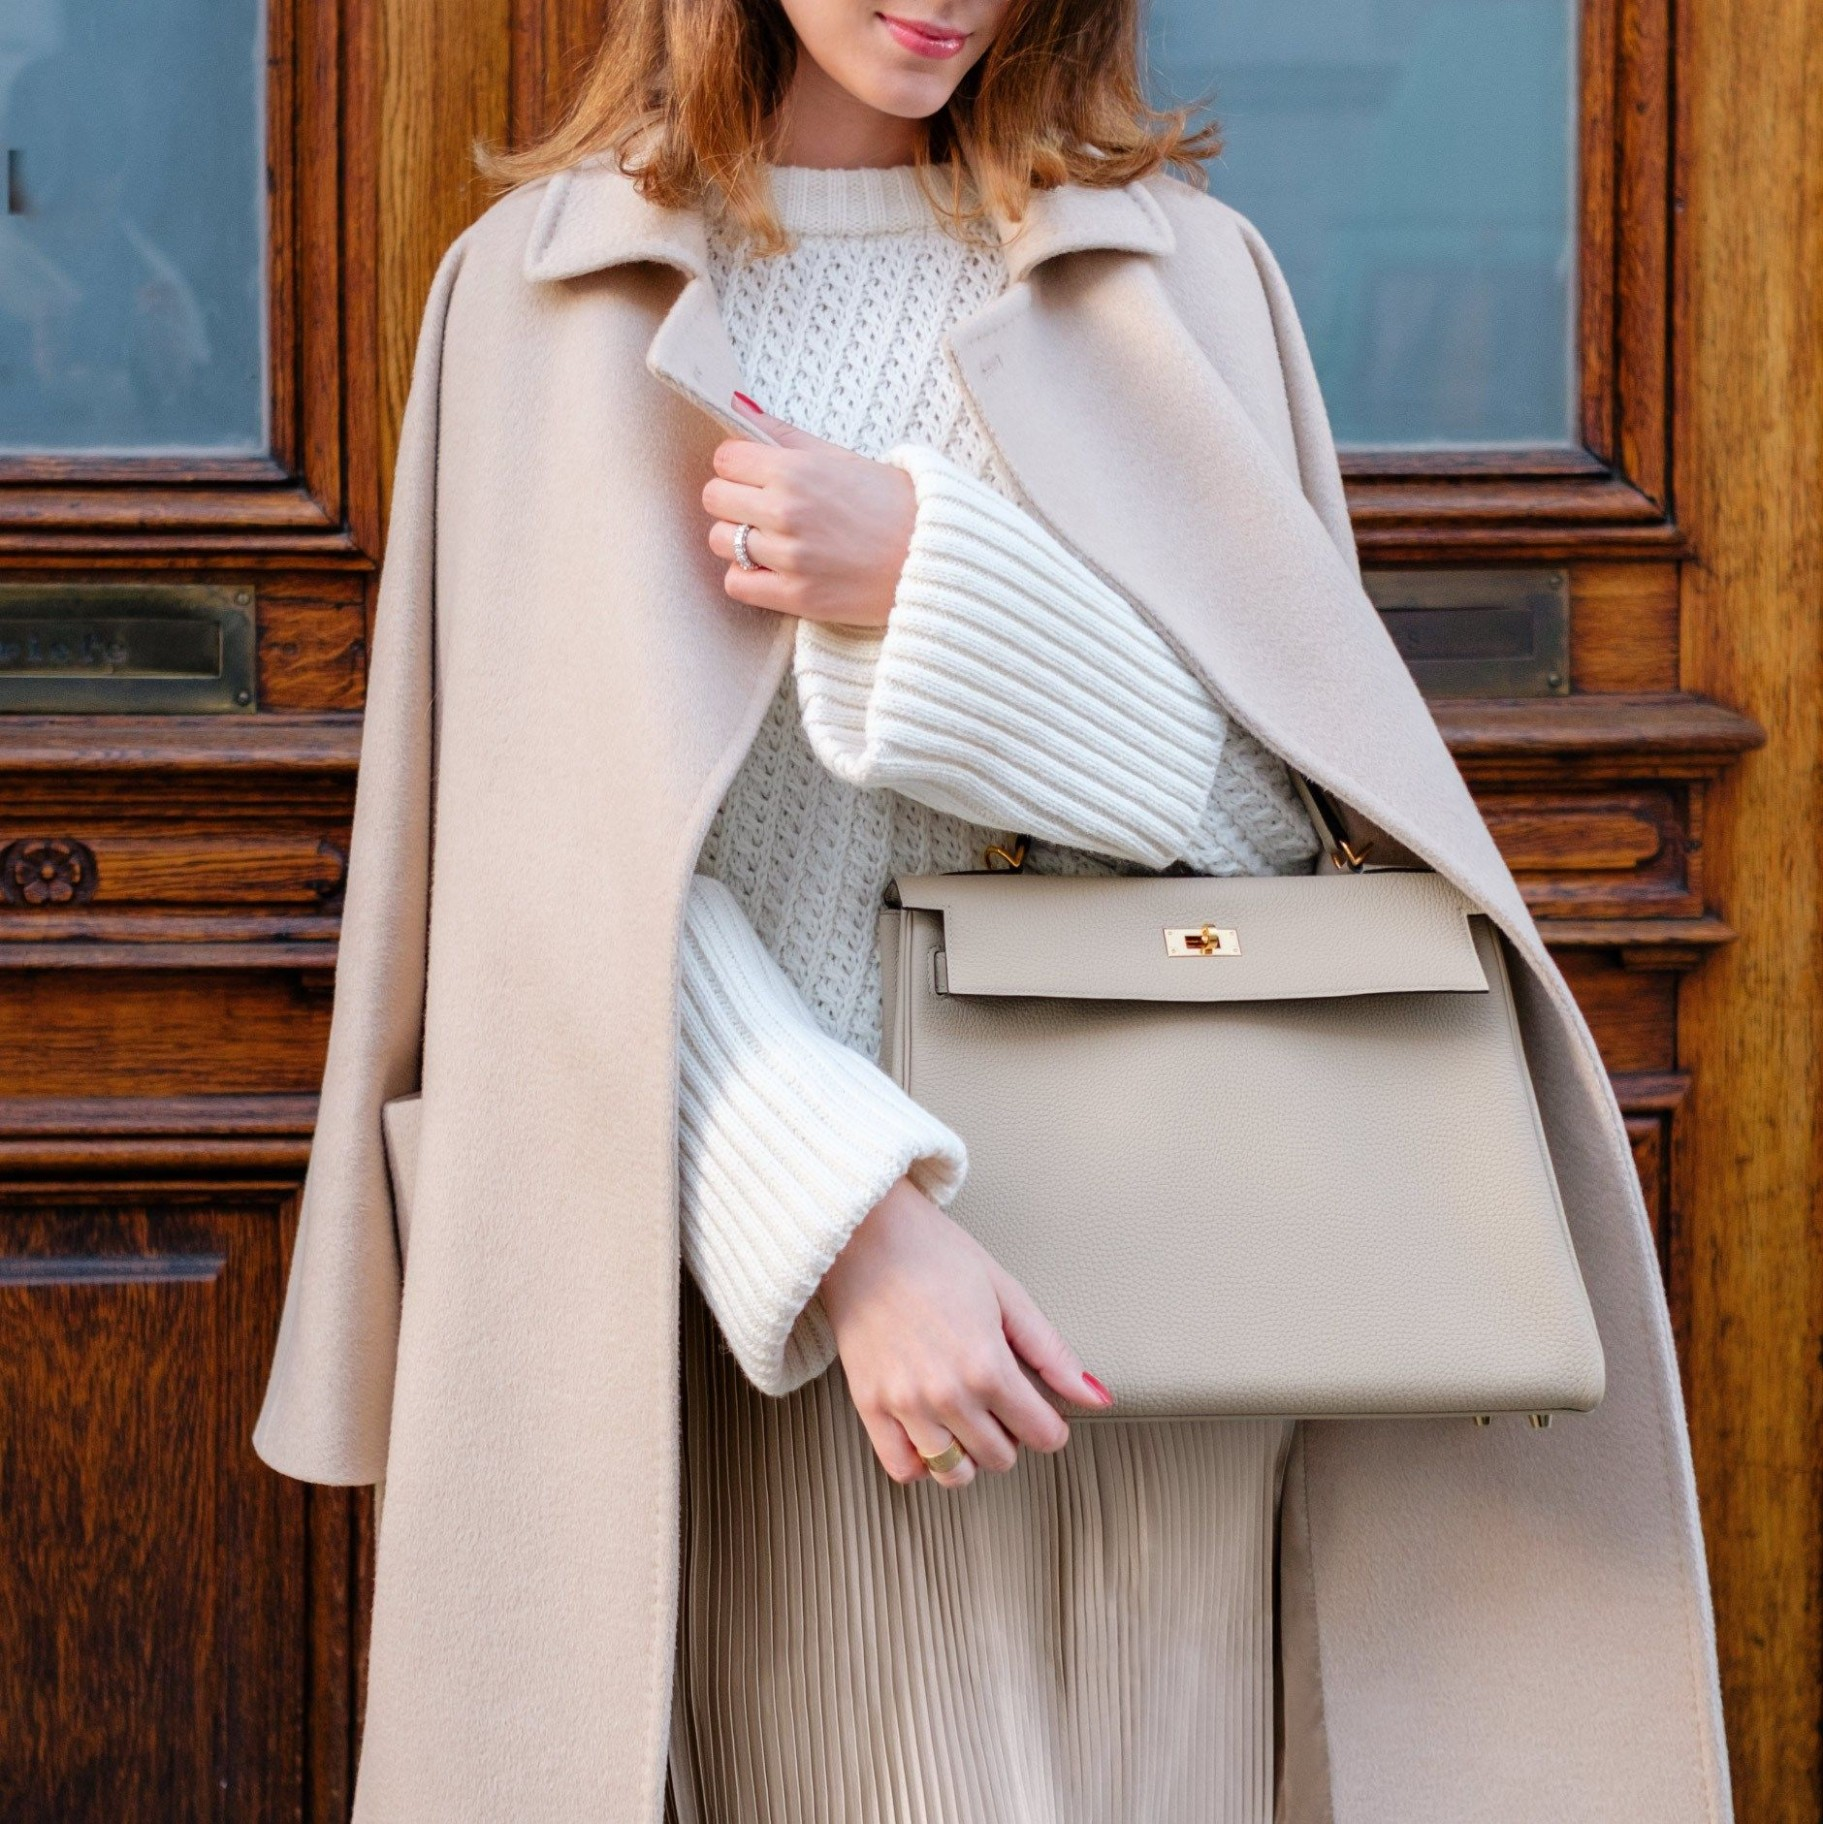 wearing hermès kelly bag in color trench (size 12) and max mara hermes kleidung